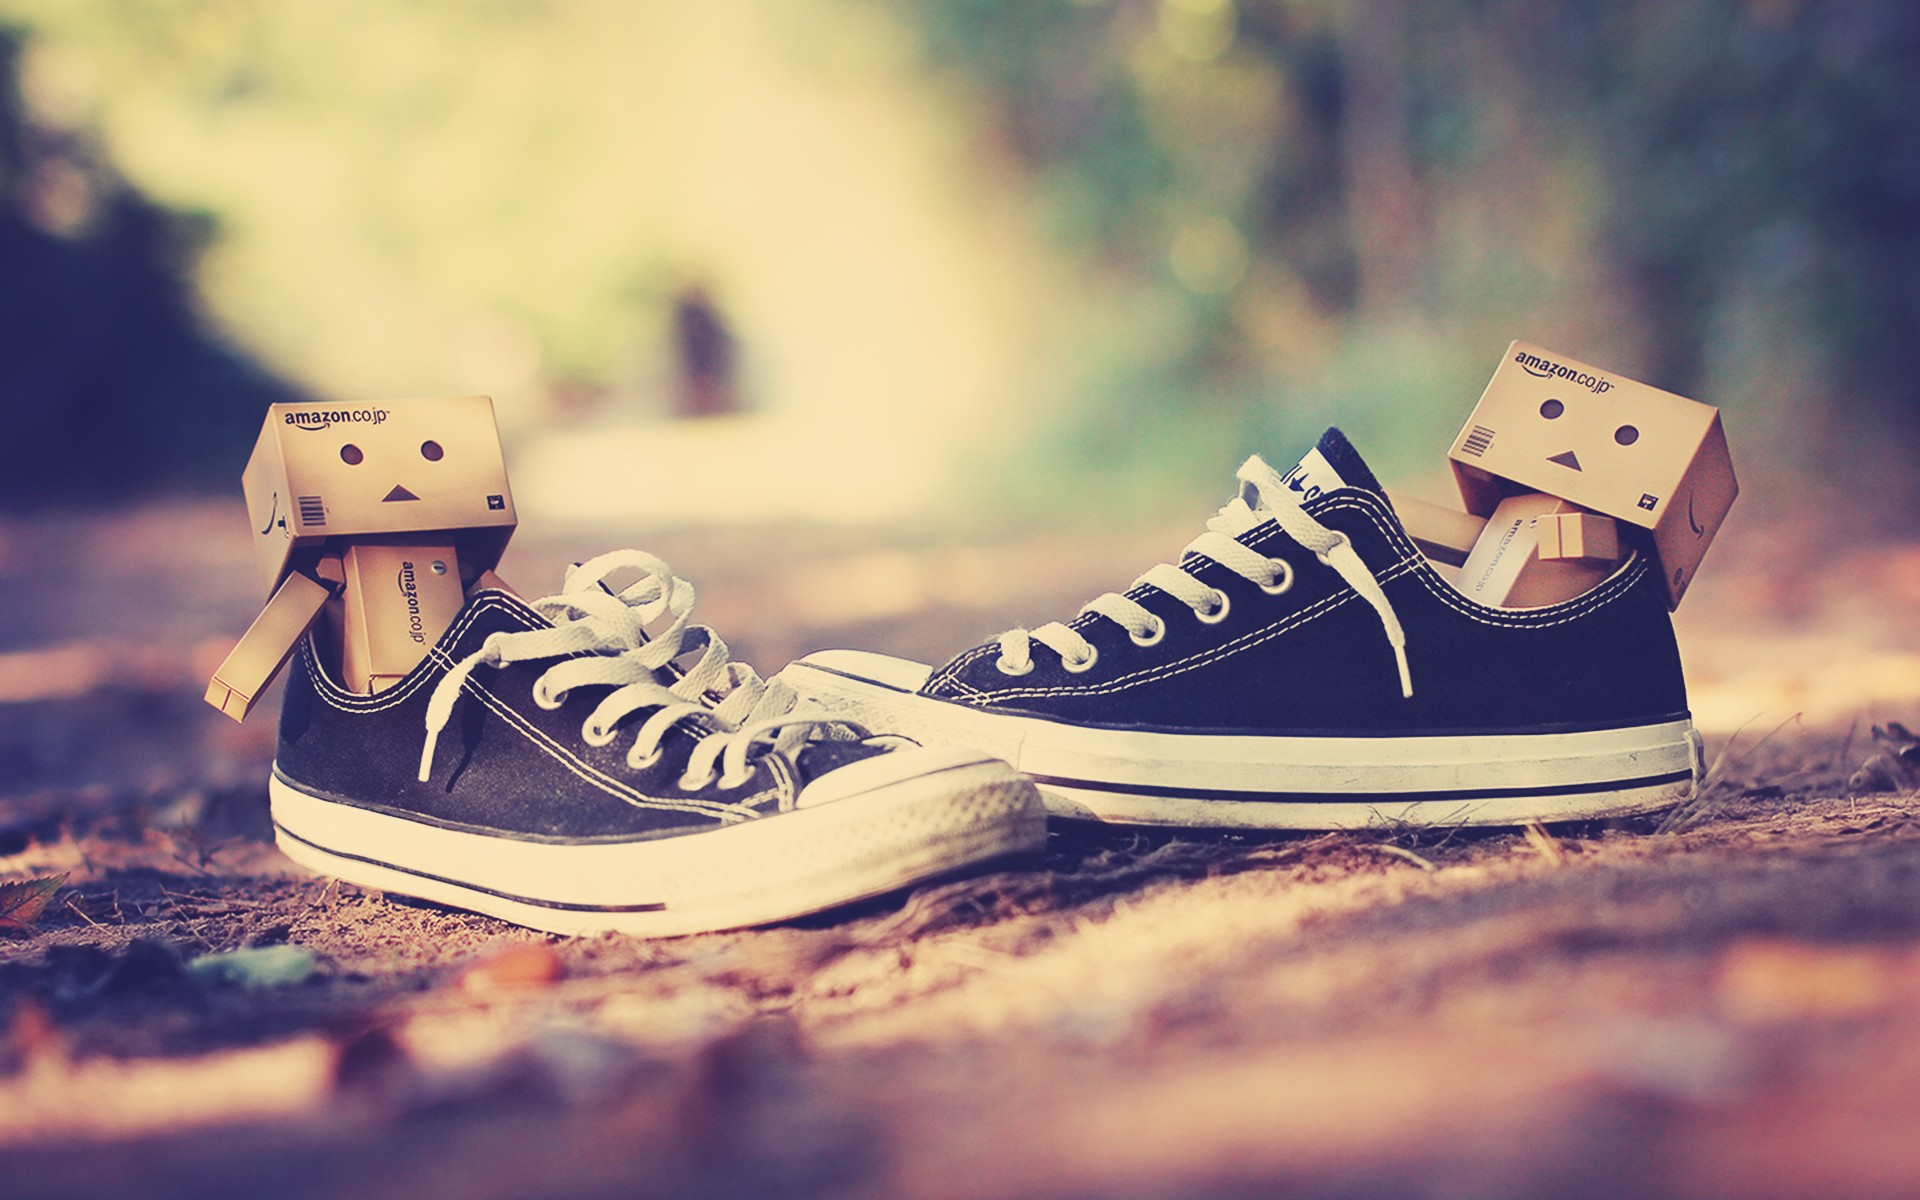 Cute Shoes Wallpaper